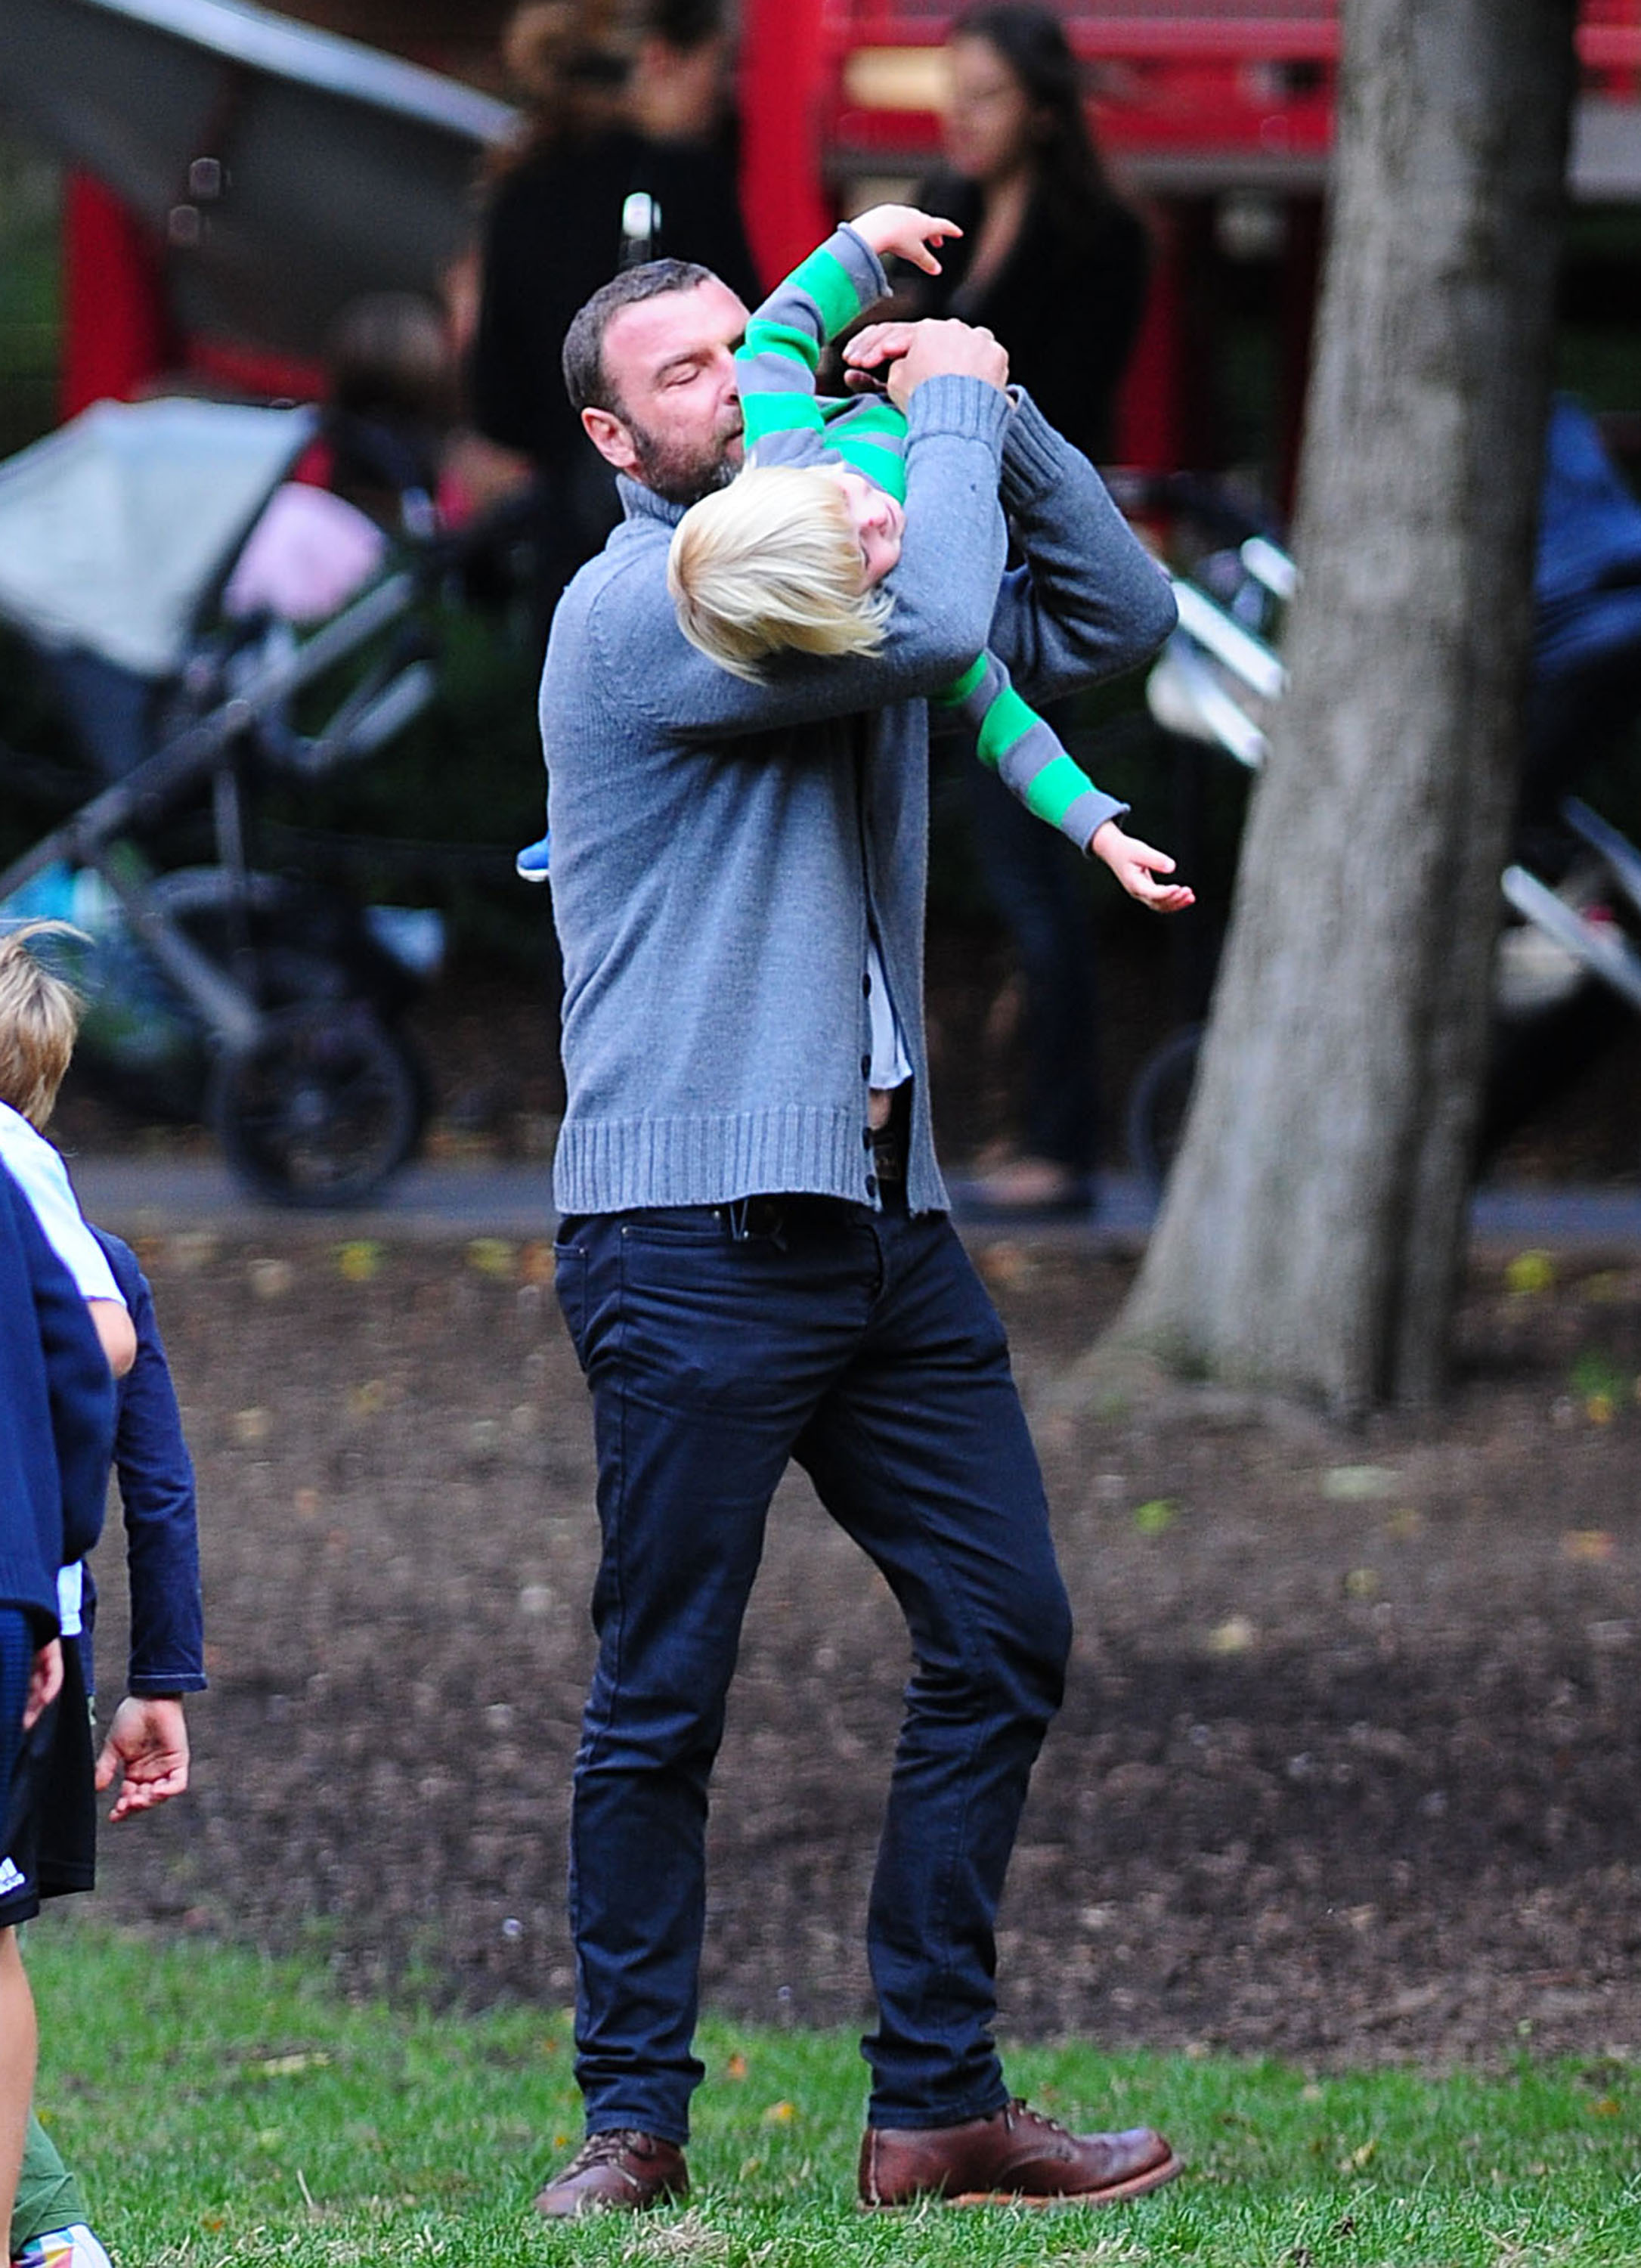 Liev Schreiber picked up son Kai at an NYC park.